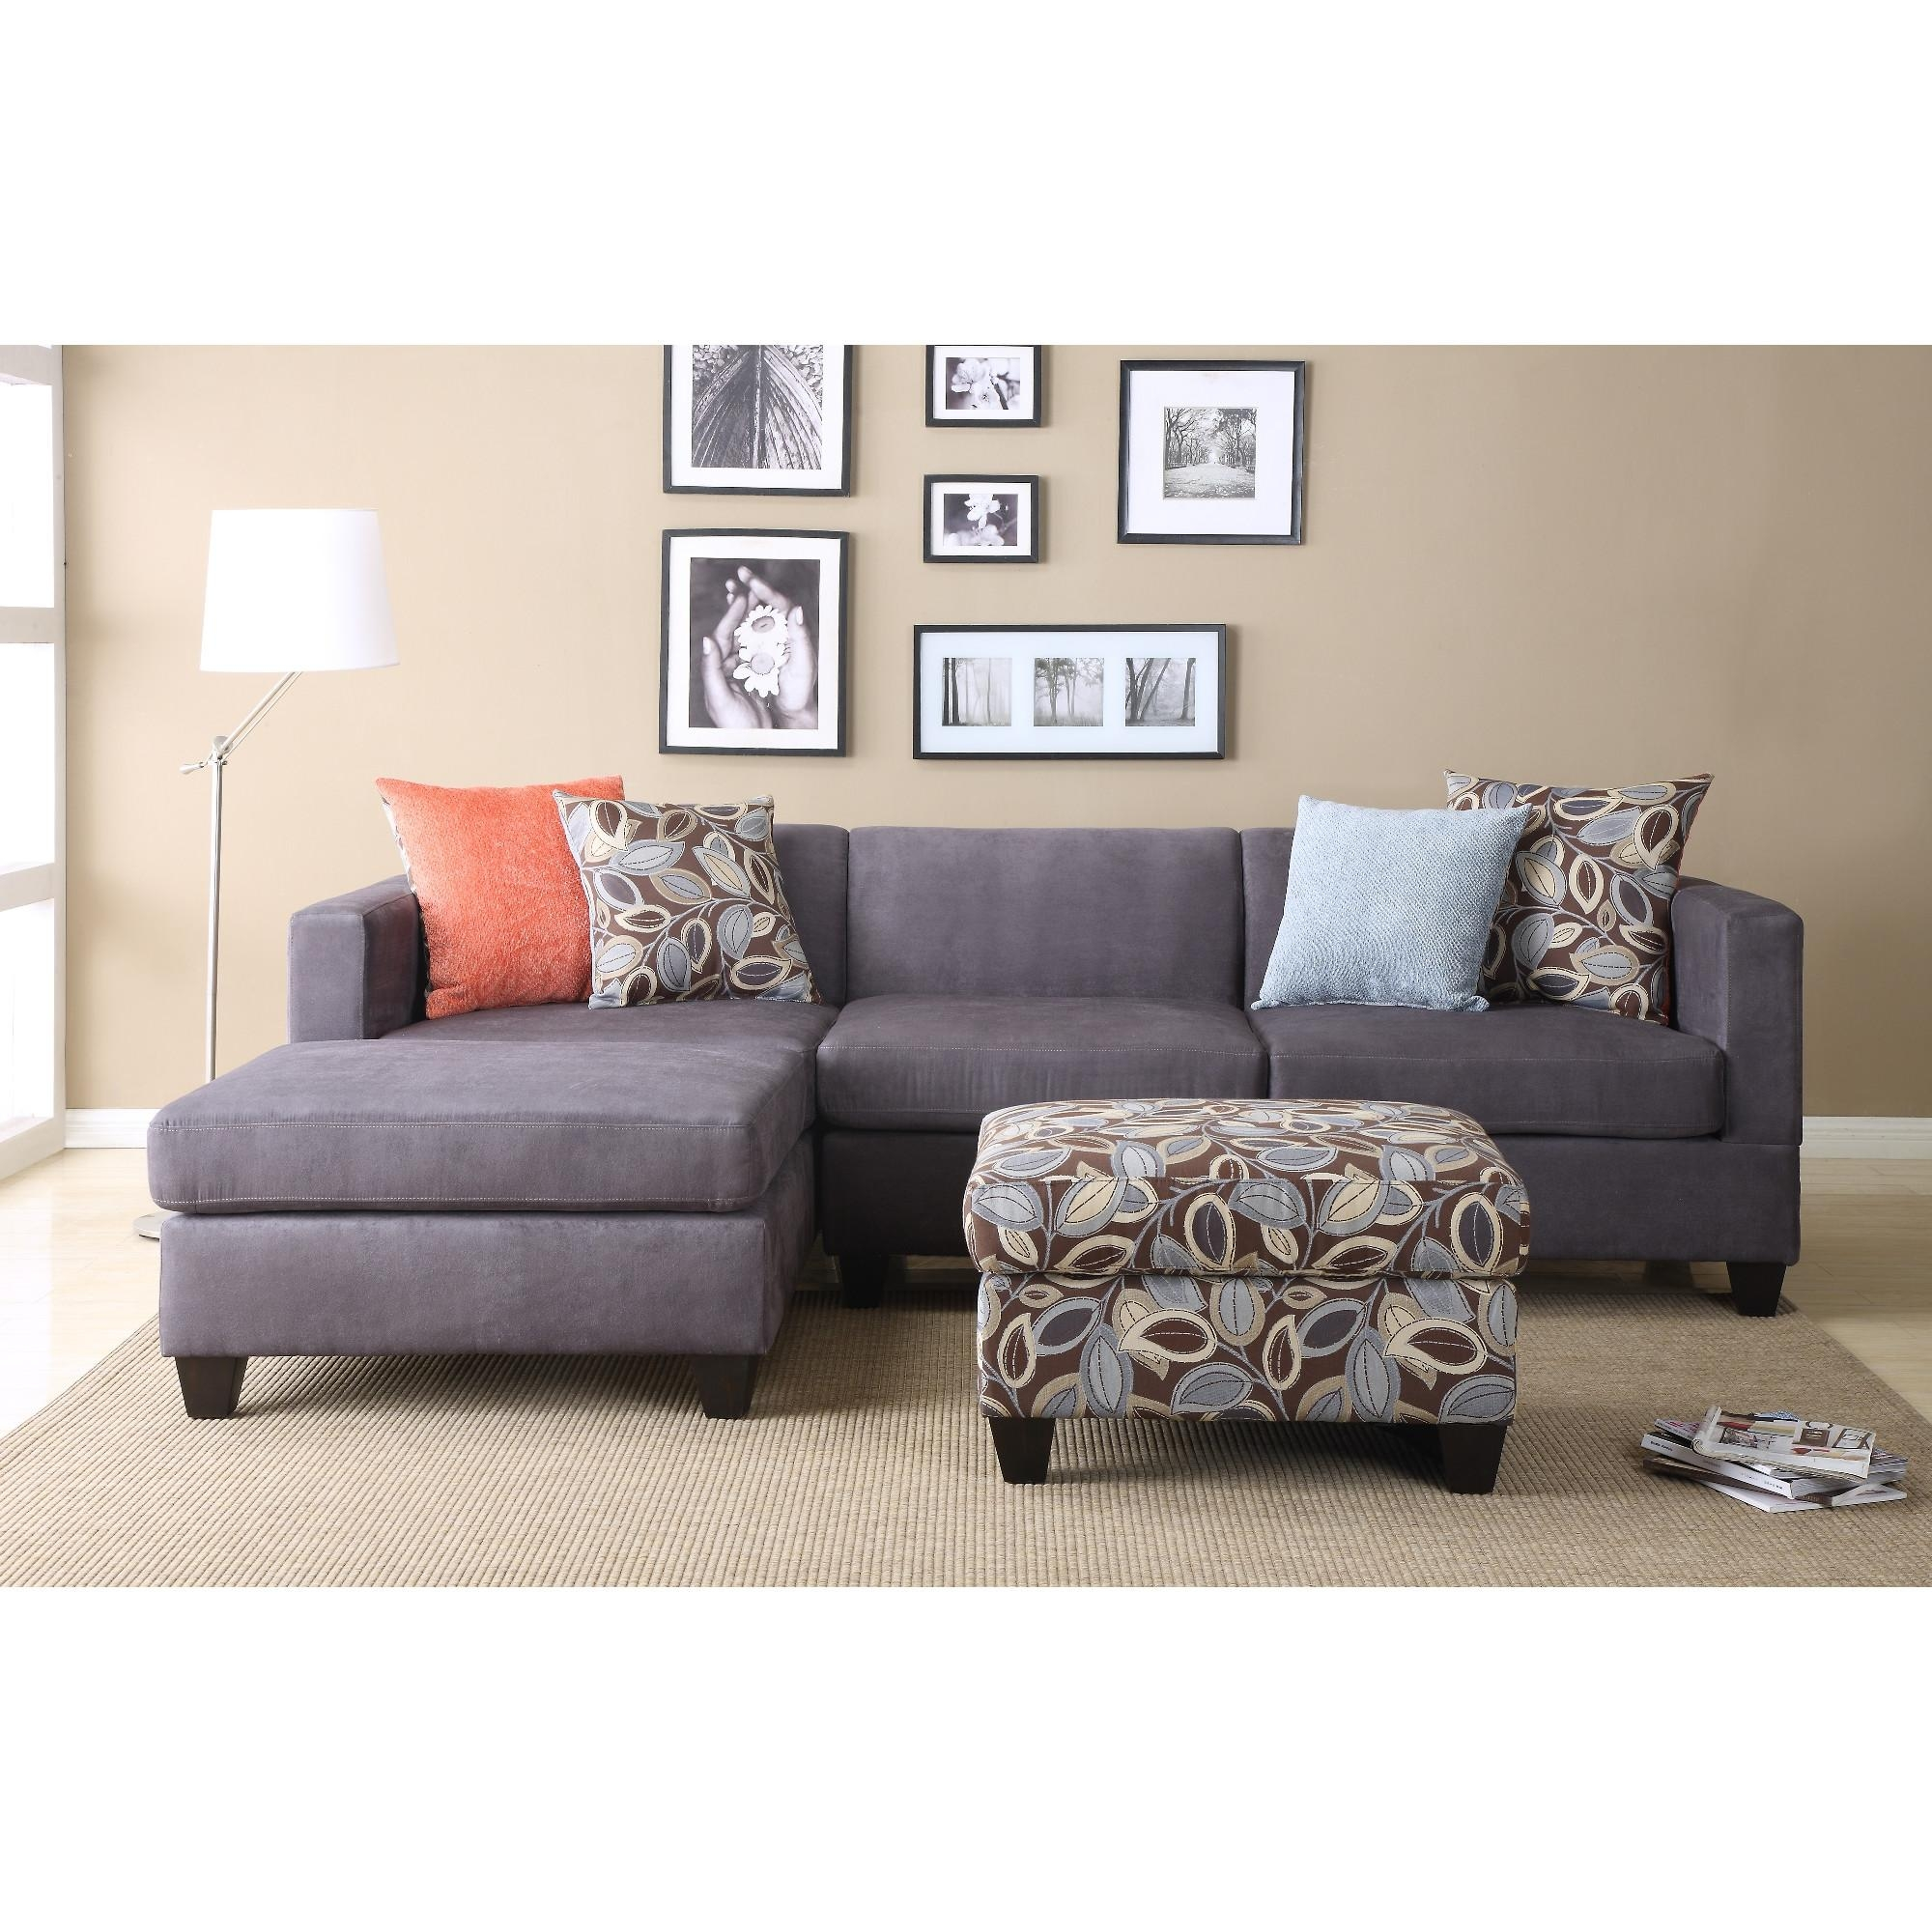 Sofas Center : Singular Cindy Crawford Sectional Sofa Pictures With Cindy Crawford Sofas (Image 20 of 20)